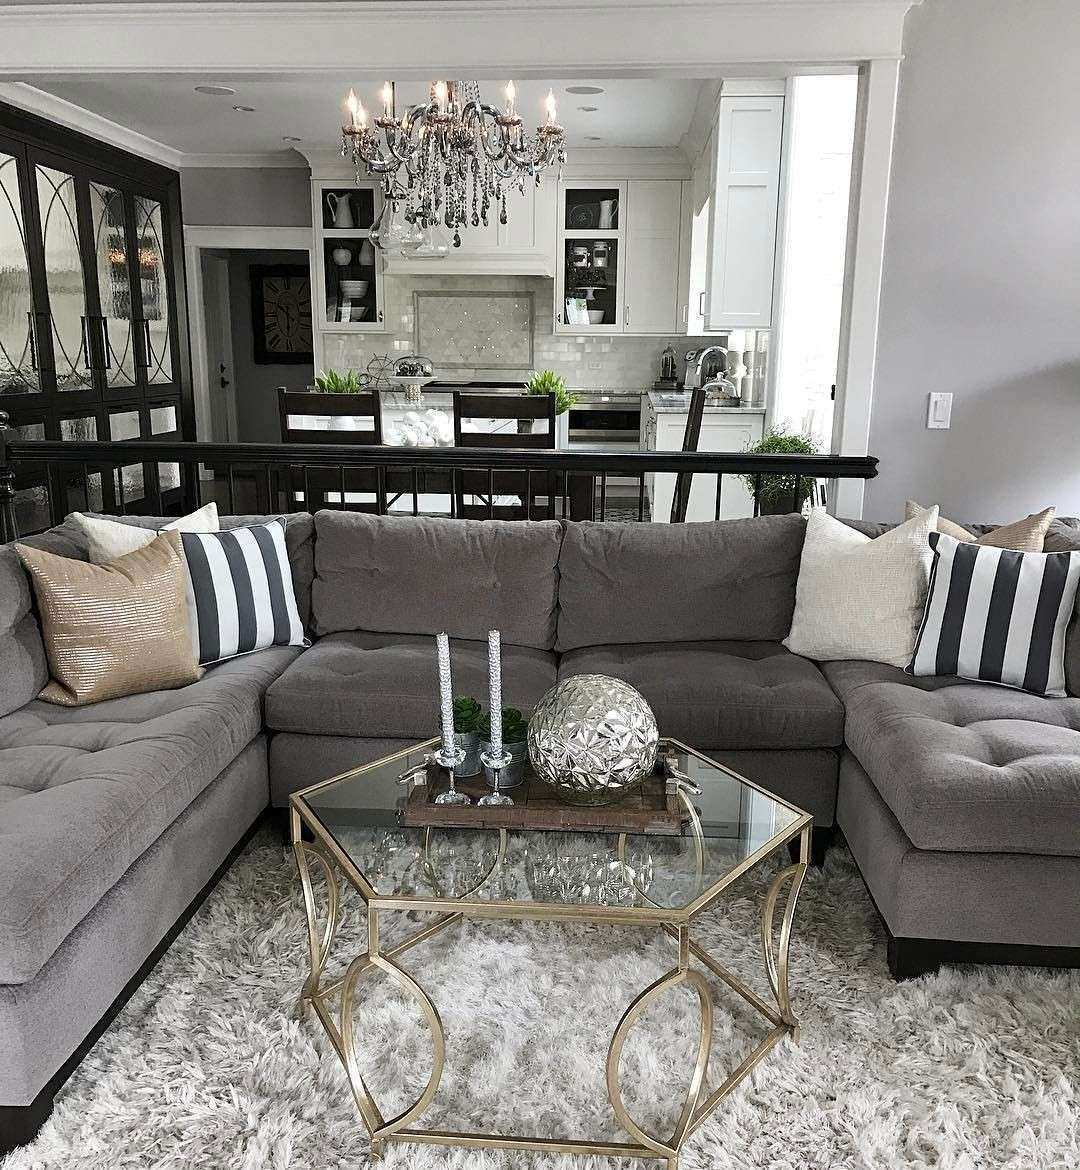 Impeccable Decorating Ideas Living Rooms Grey Walls Living Room Light Grey Couch Grey Decor Living Decorating Ideas Living Rooms Grey Walls living room Decorating Ideas For Living Room